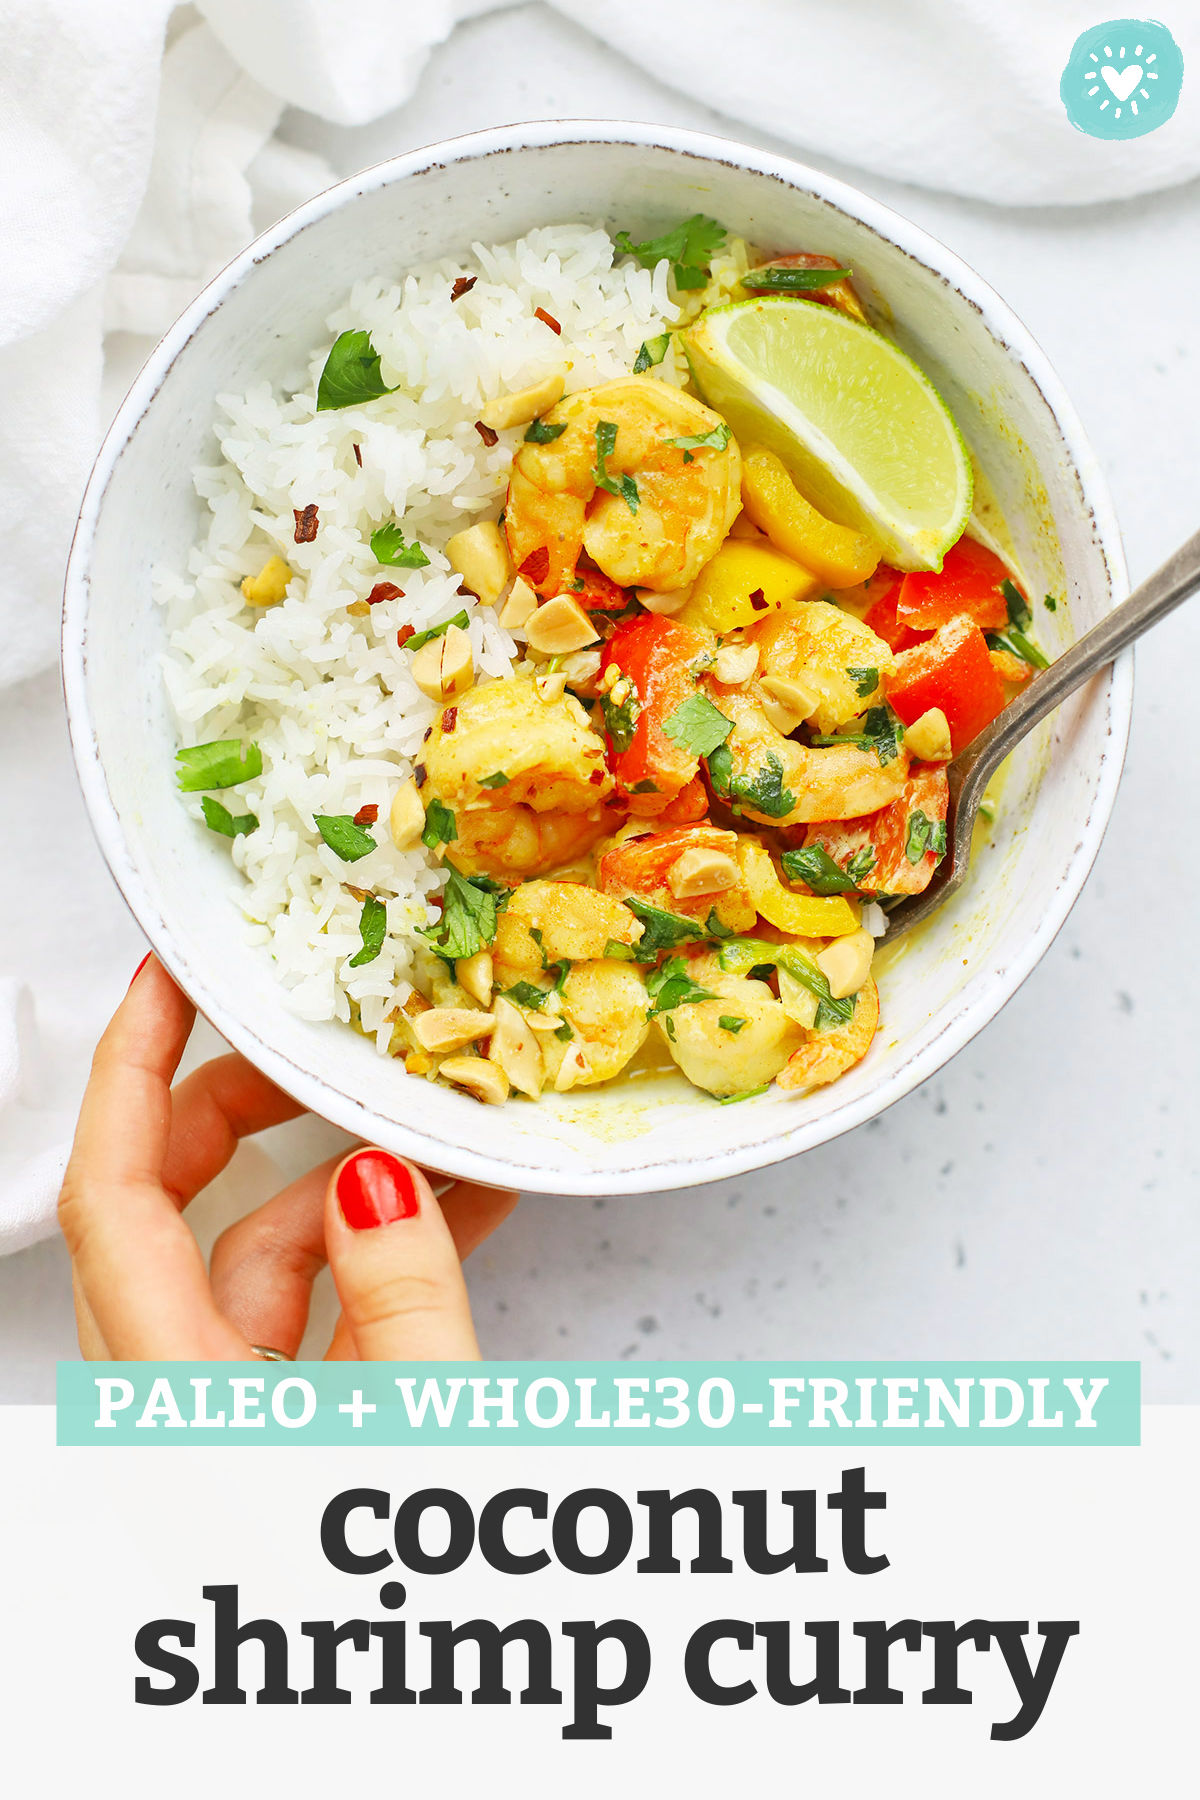 Creamy Coconut Shrimp Curry. This paleo shrimp curry recipe has a gorgeous coconut curry sauce and colorful veggies that make it extra special. // Shrimp curry recipe // healthy shrimp curry // easy shrimp curry #curry #shrimp #dinner #healthydinner #shrimpcurry #paleo #whole30